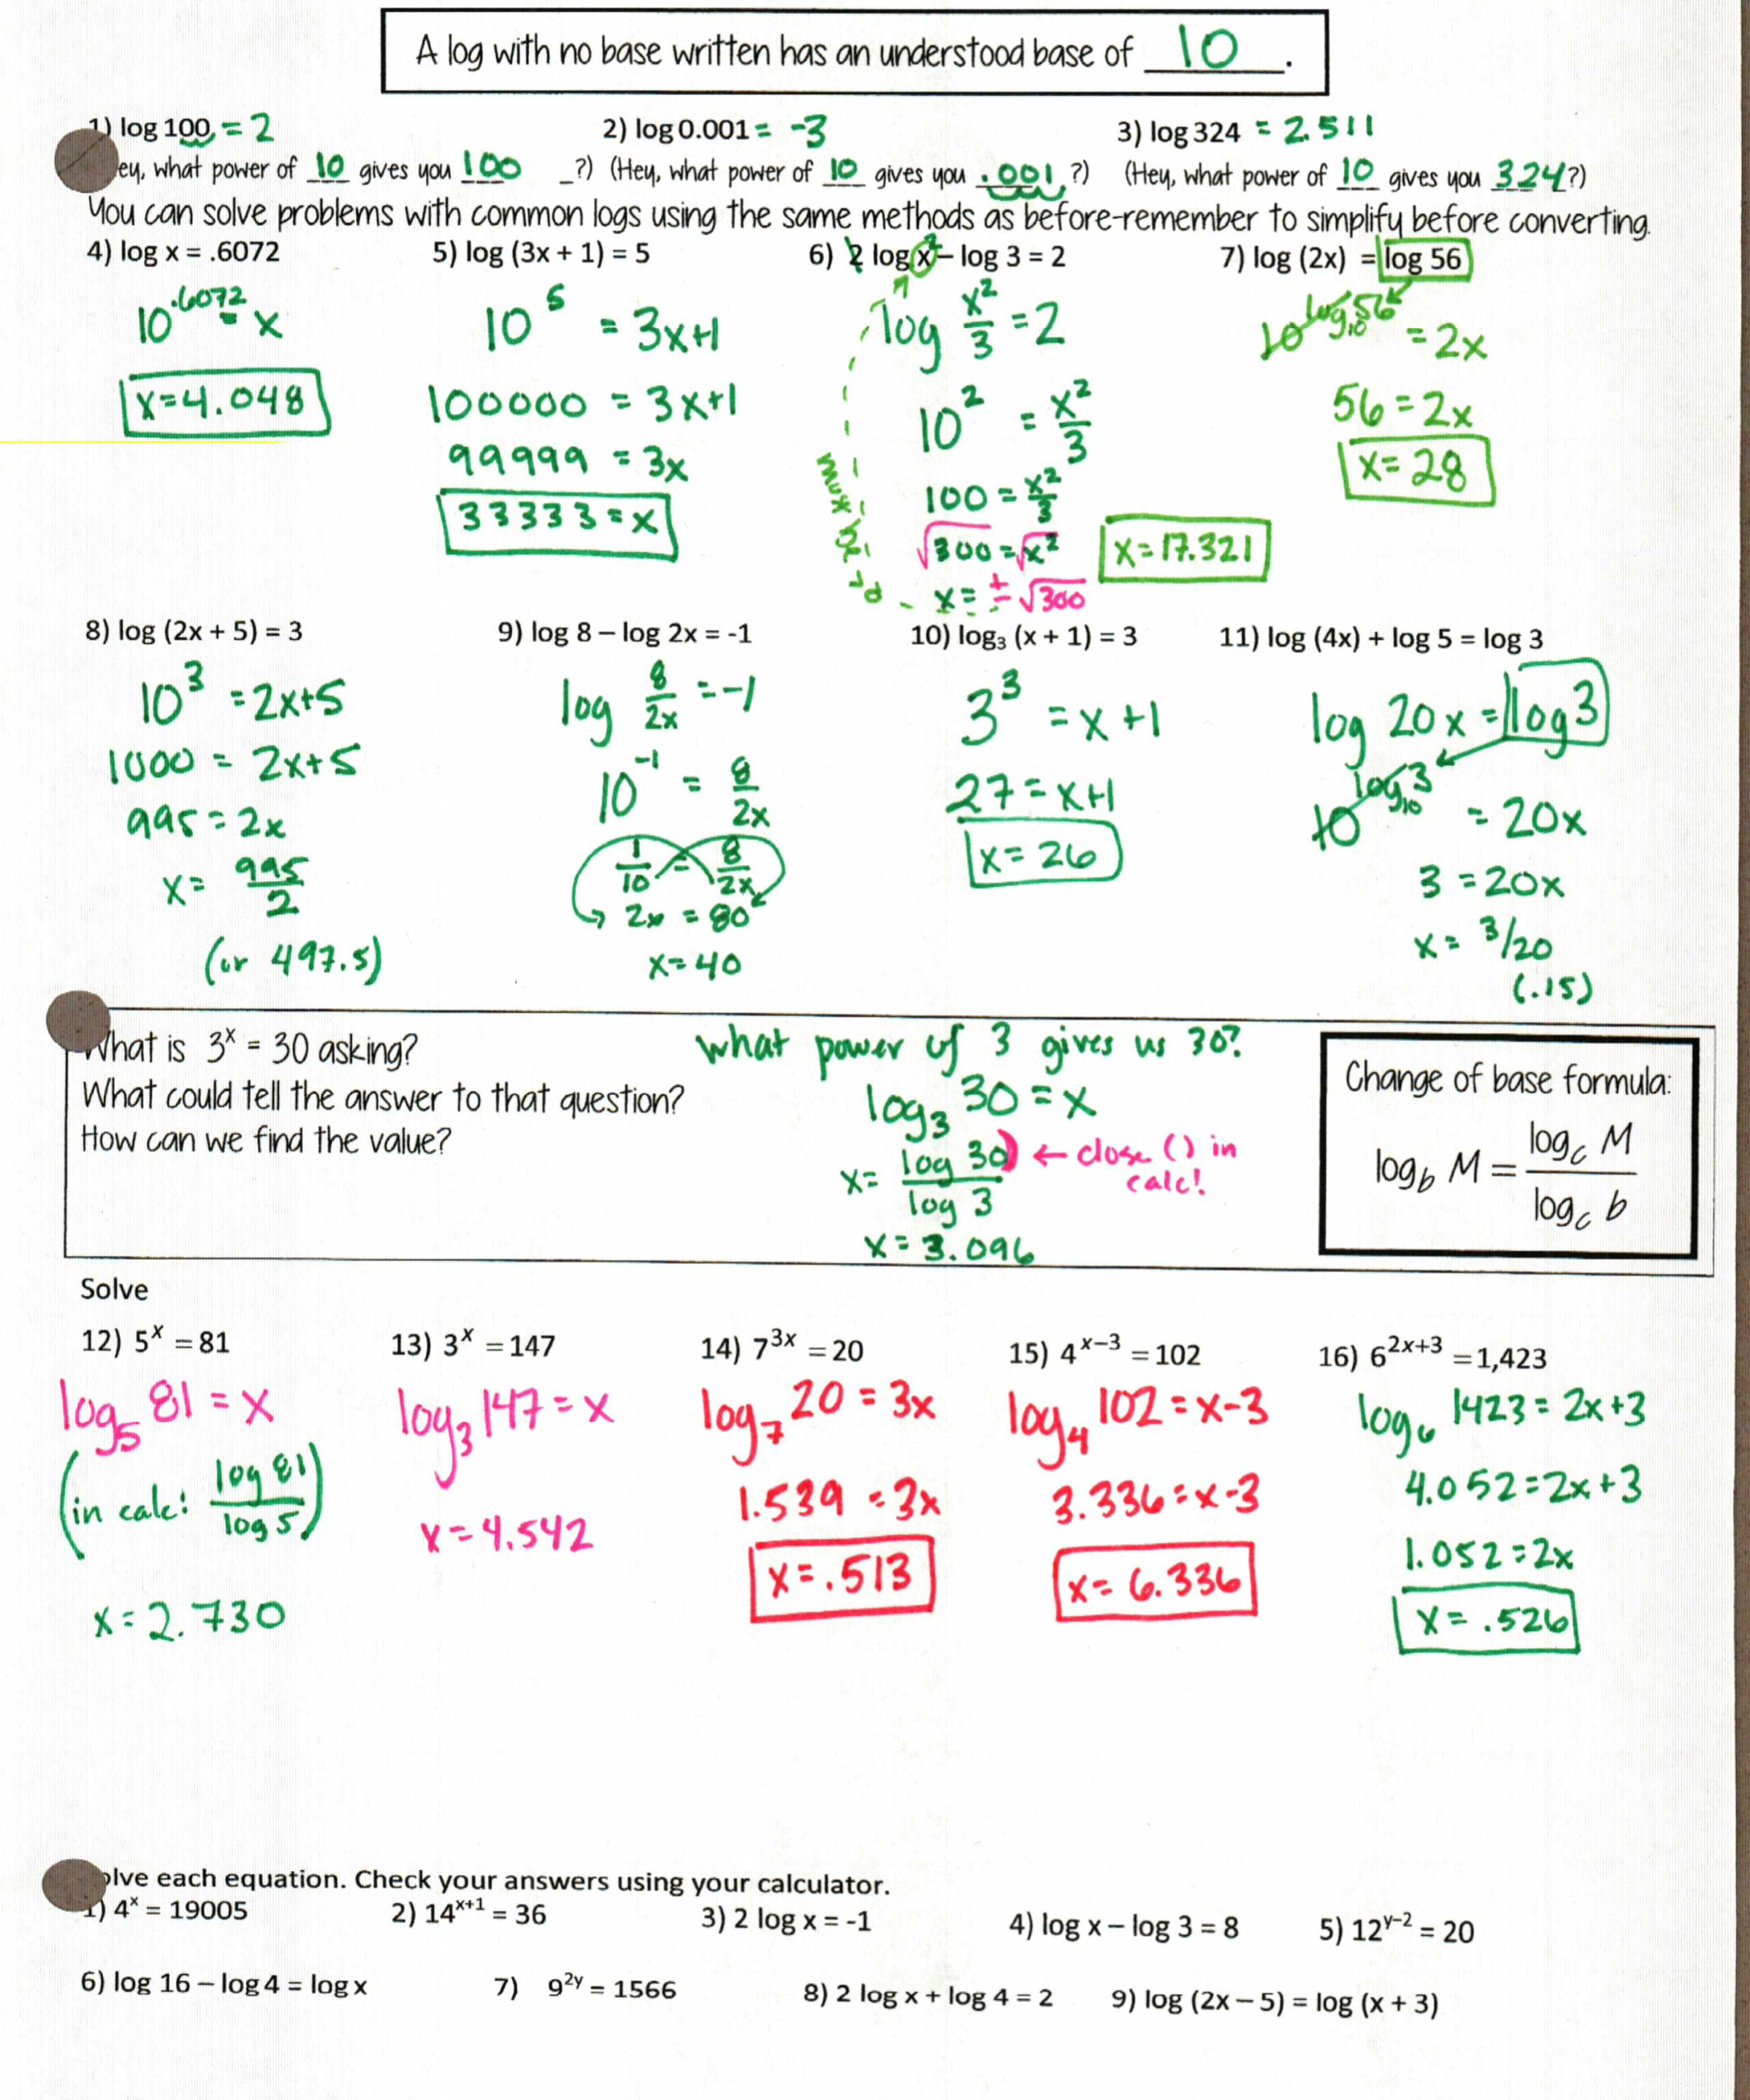 More Logs! – Insert Clever Math Pun Here